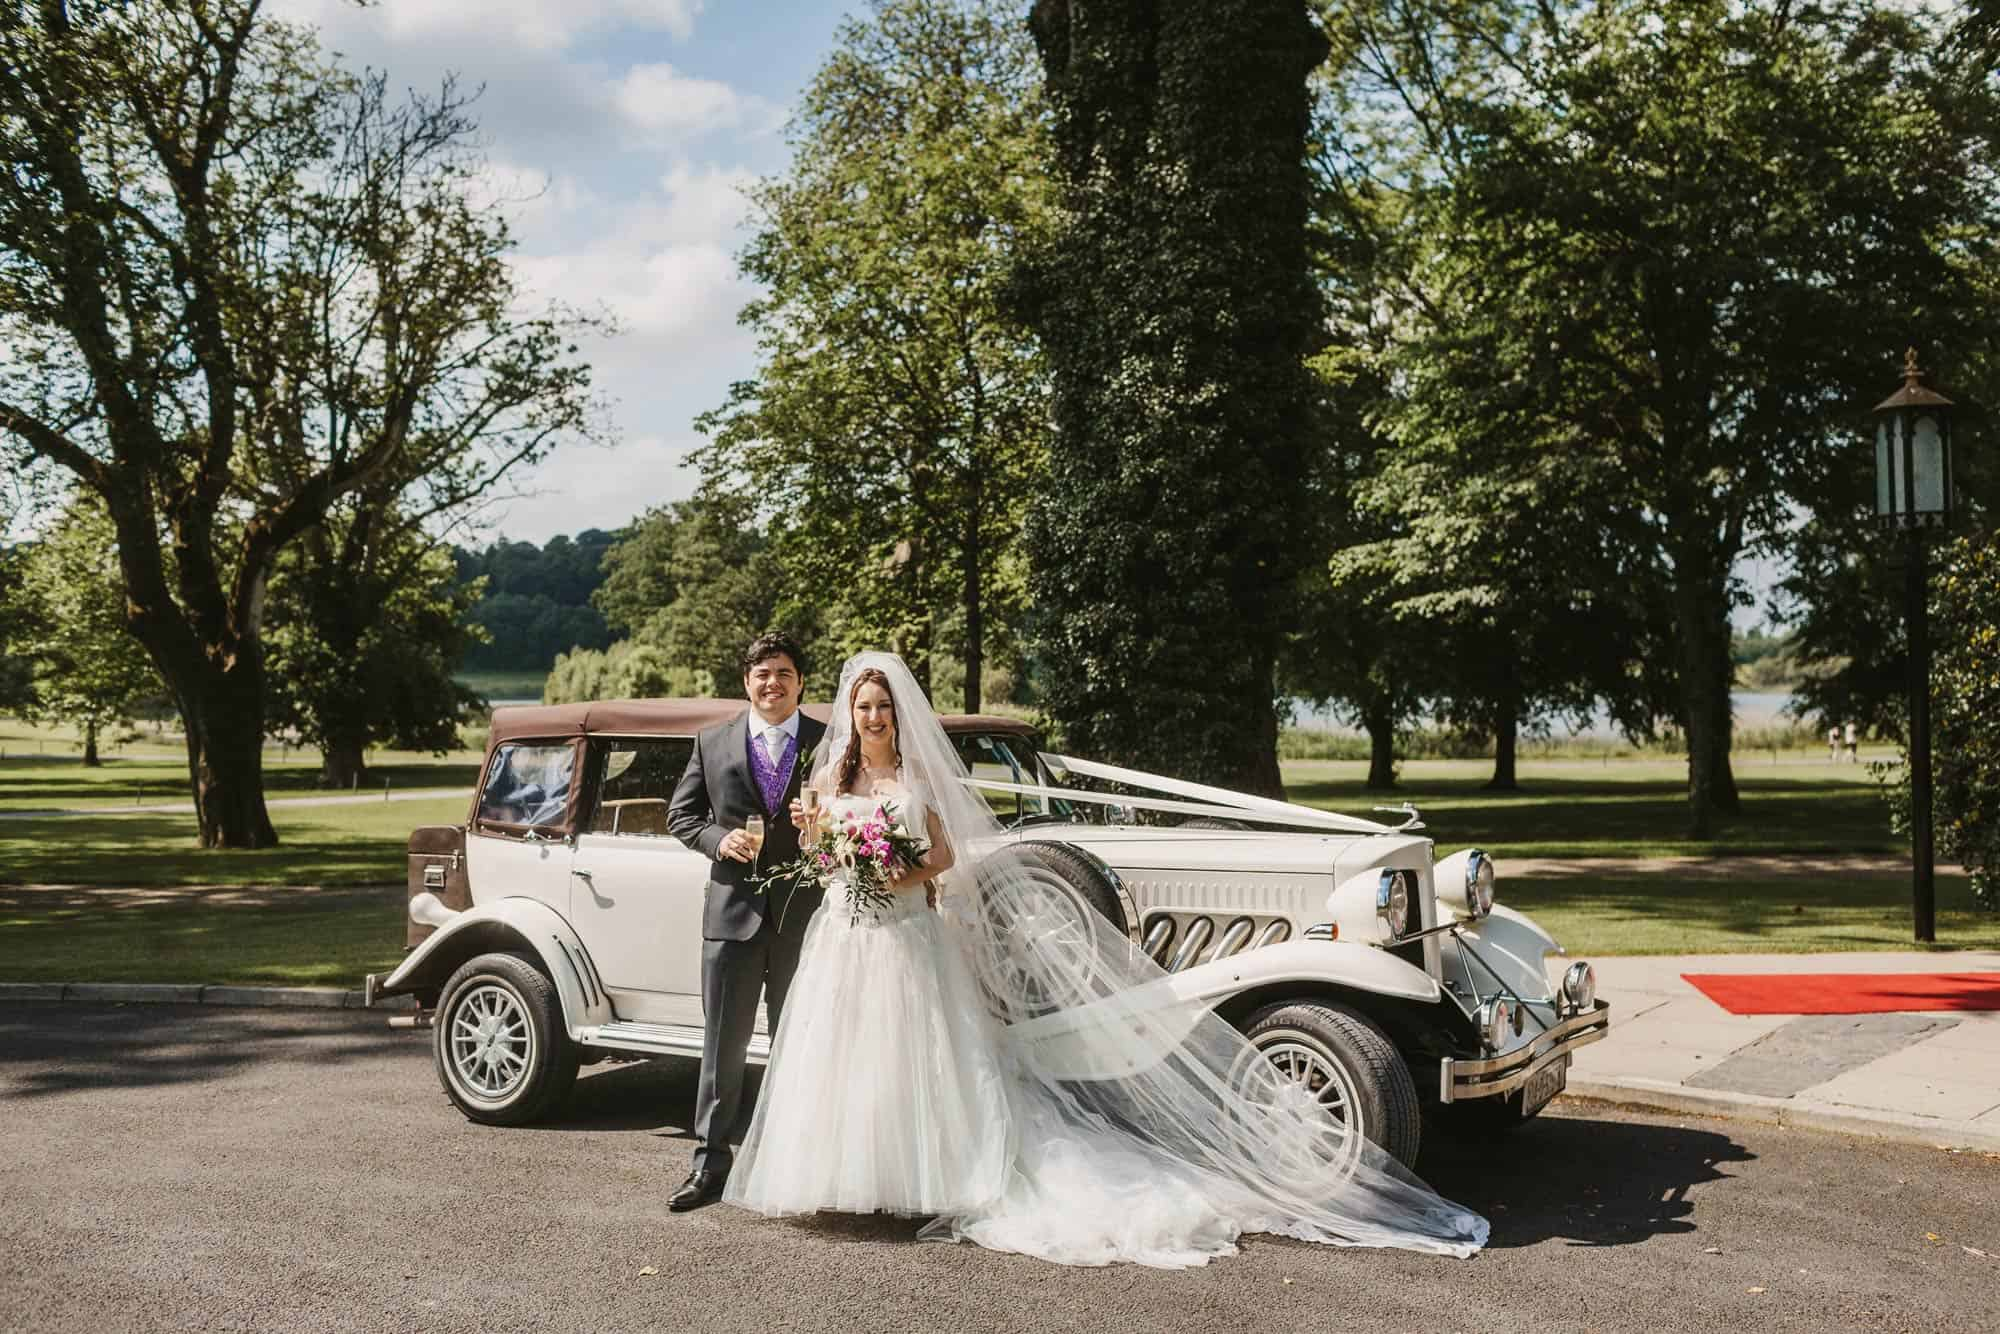 Dromoland Castle Ireland, couple in front of vintage car